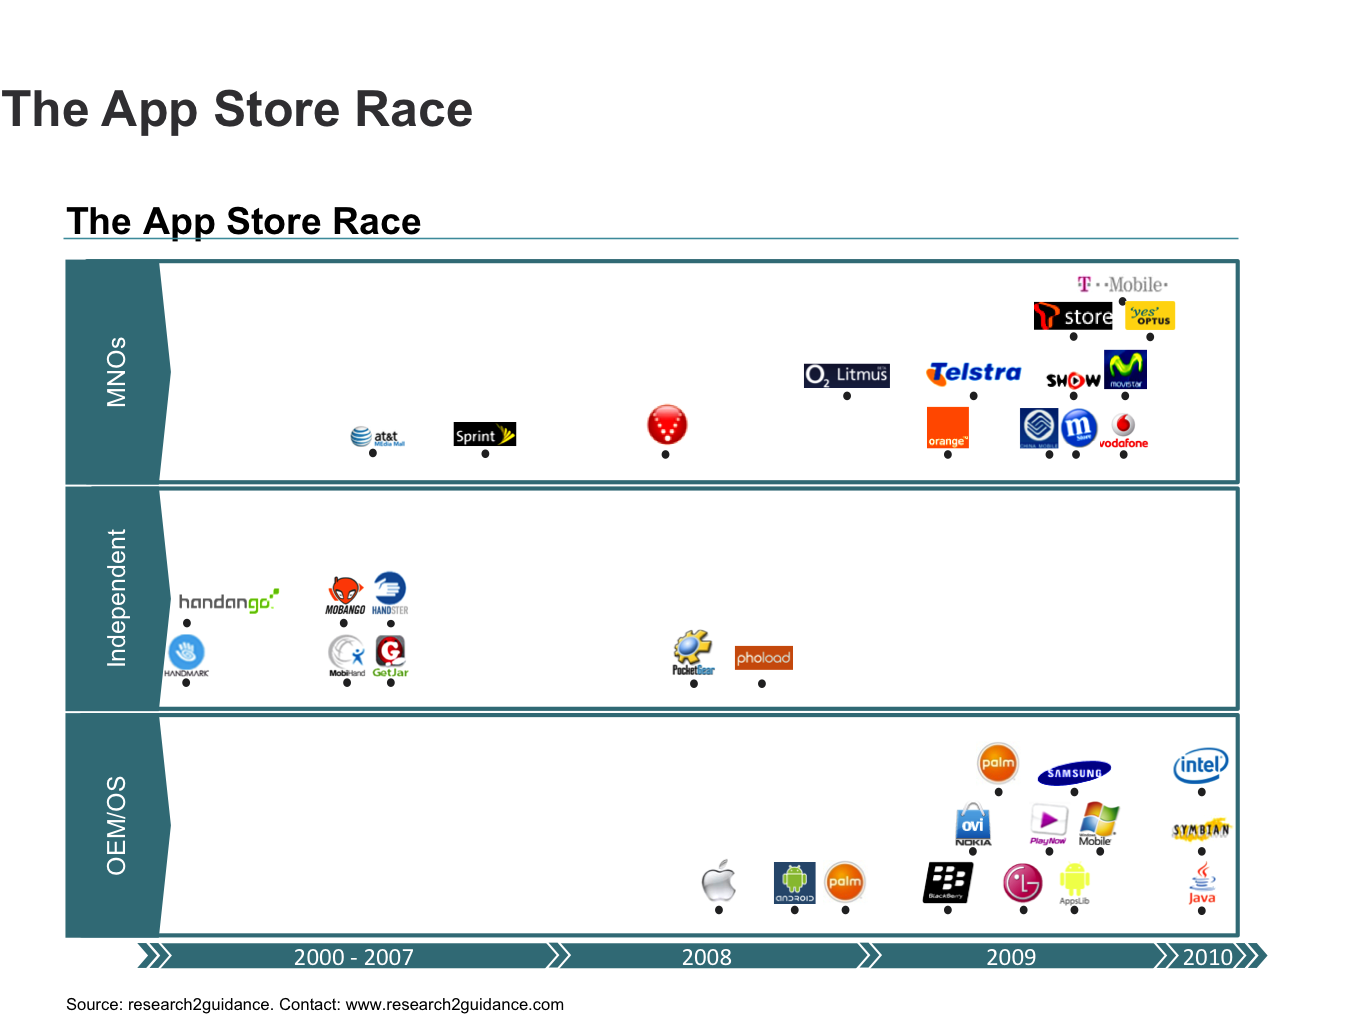 Who will win the app store race?